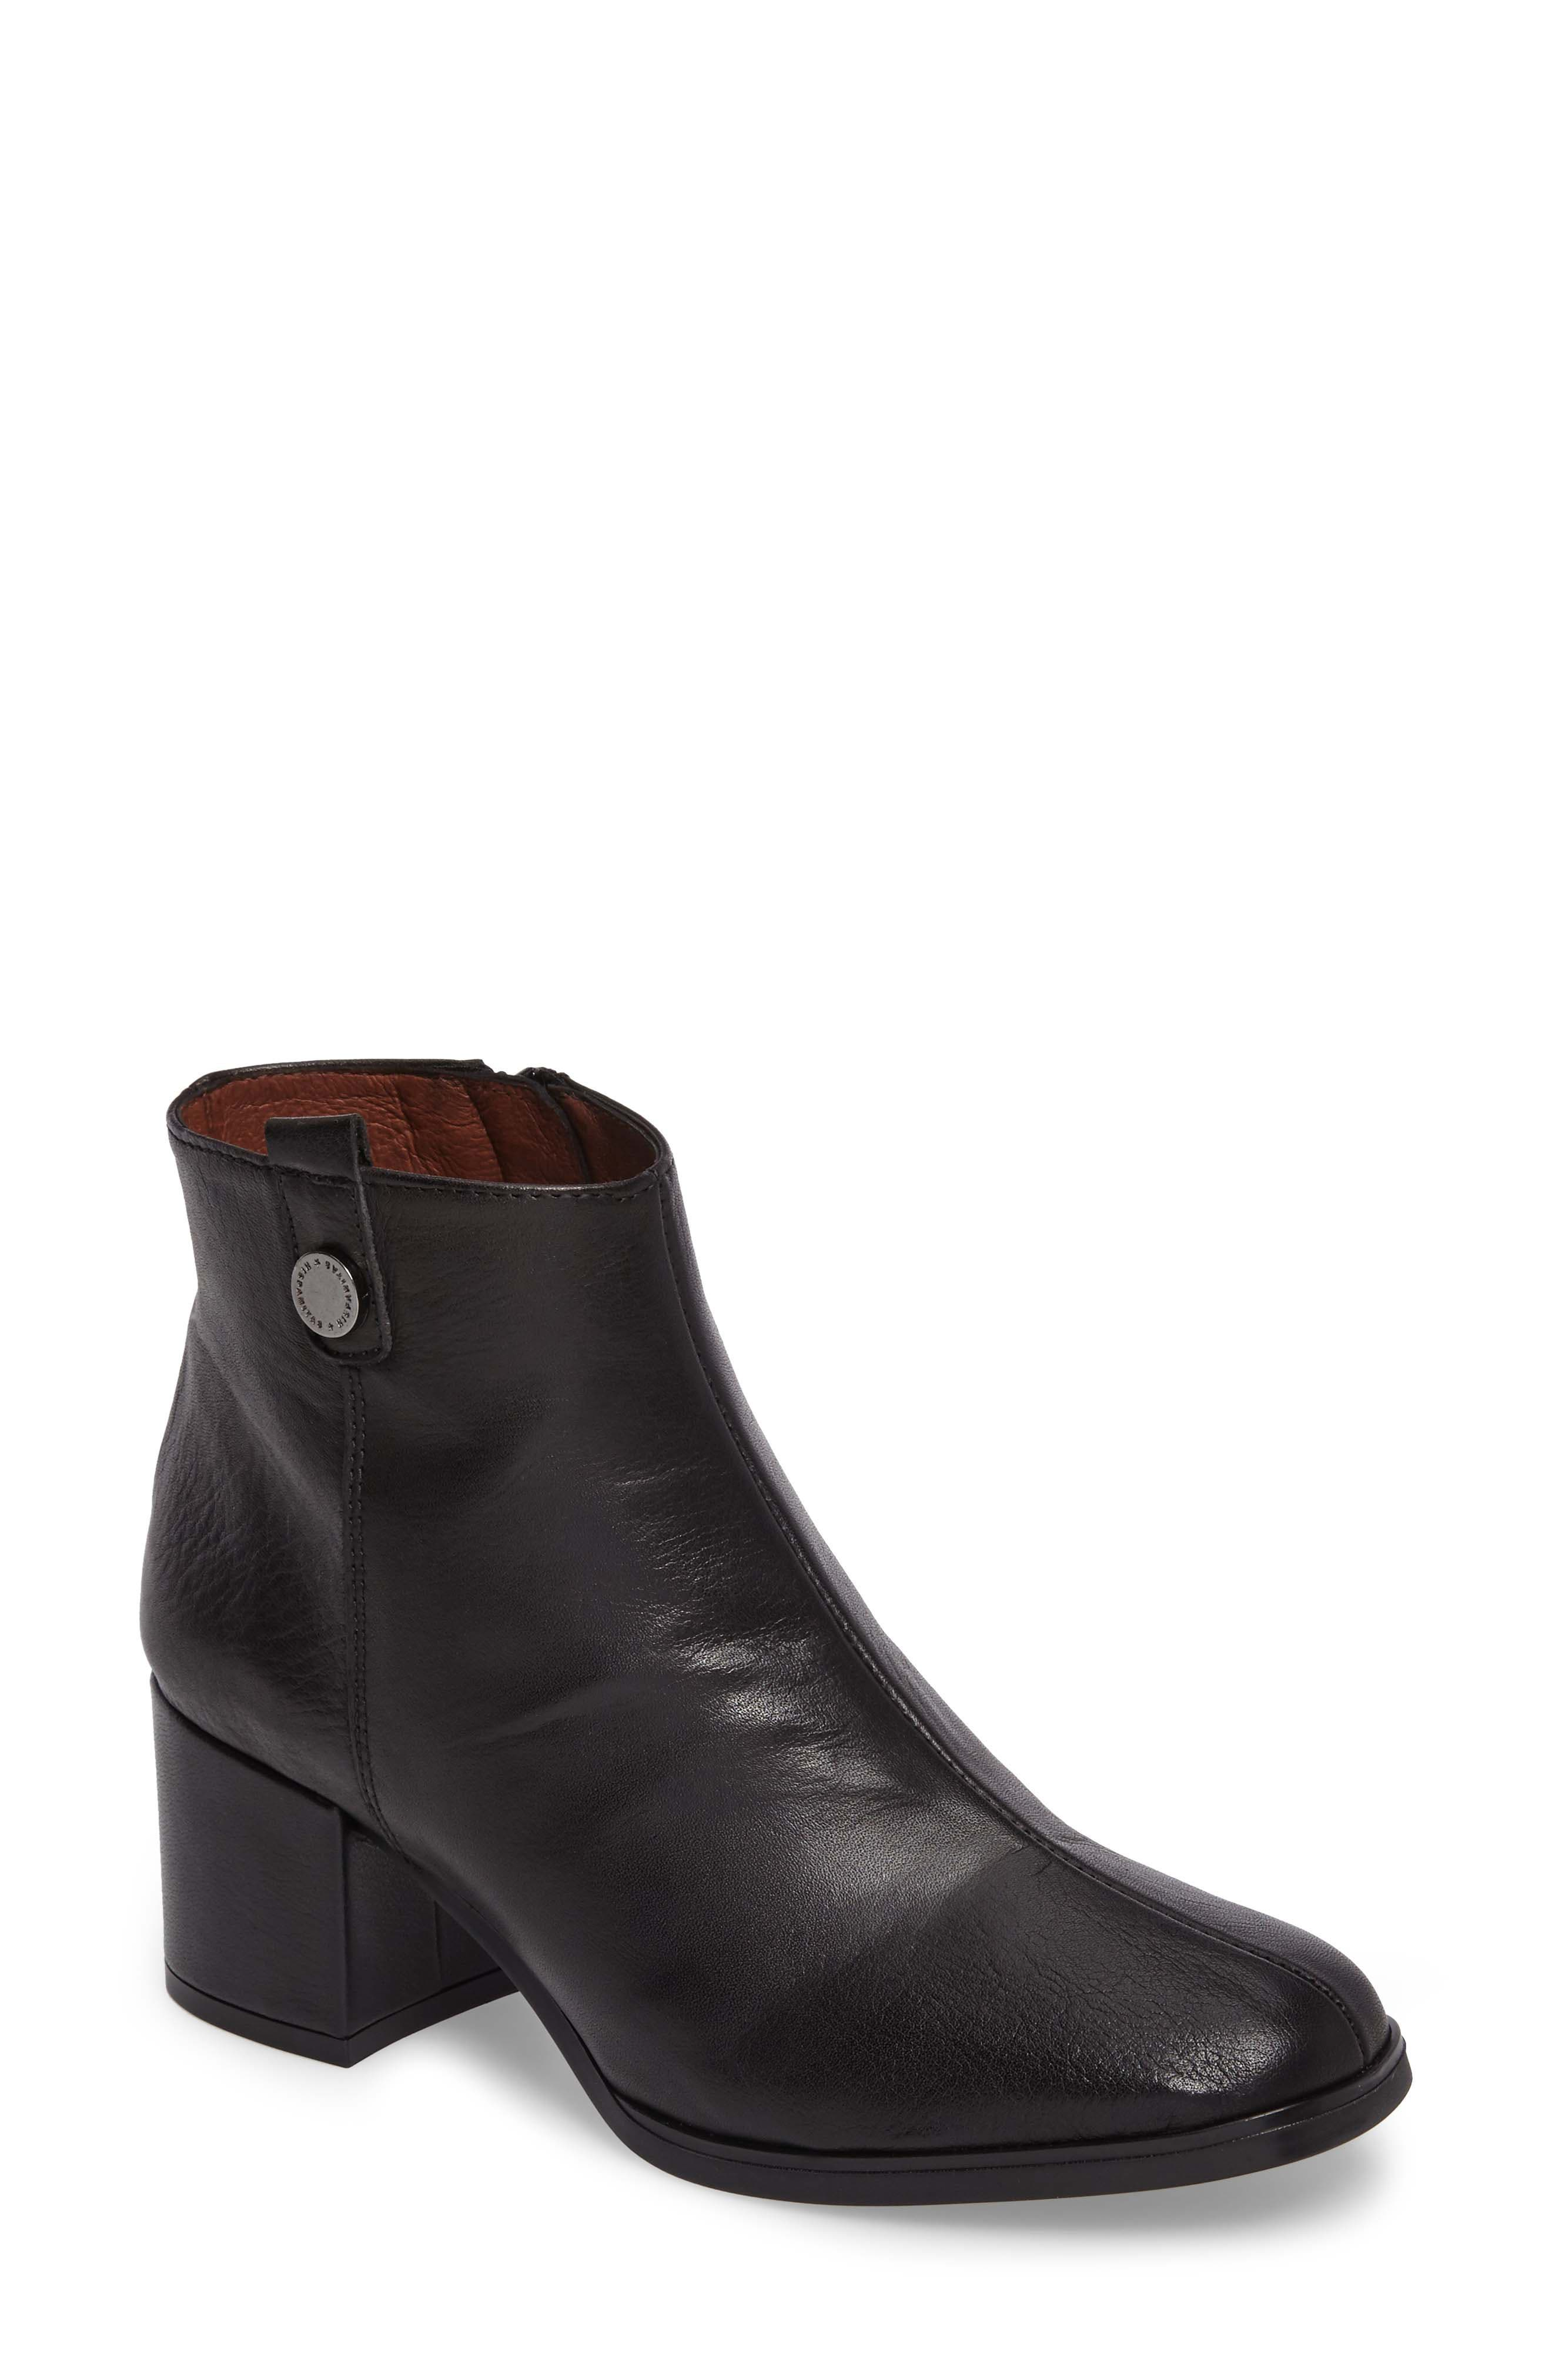 Christa Bootie,                         Main,                         color,